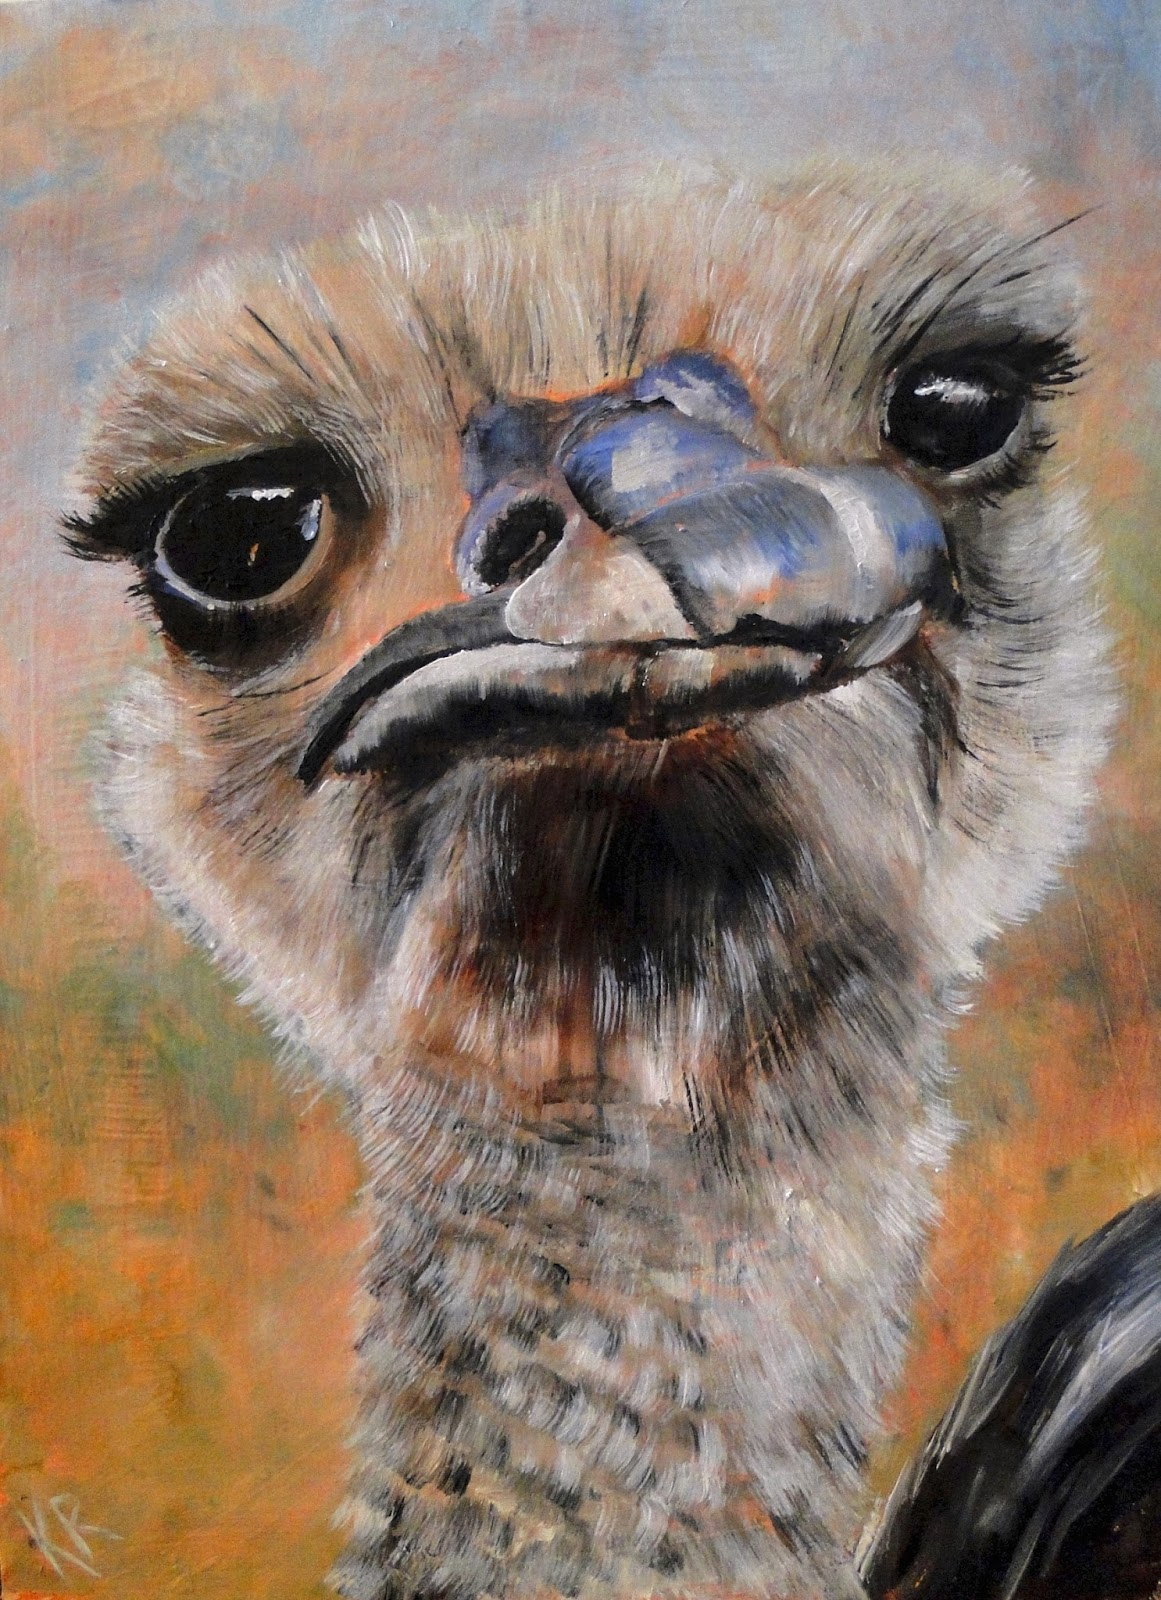 oil painting, ostrich, beak, feathers, how to paint beak and feathers